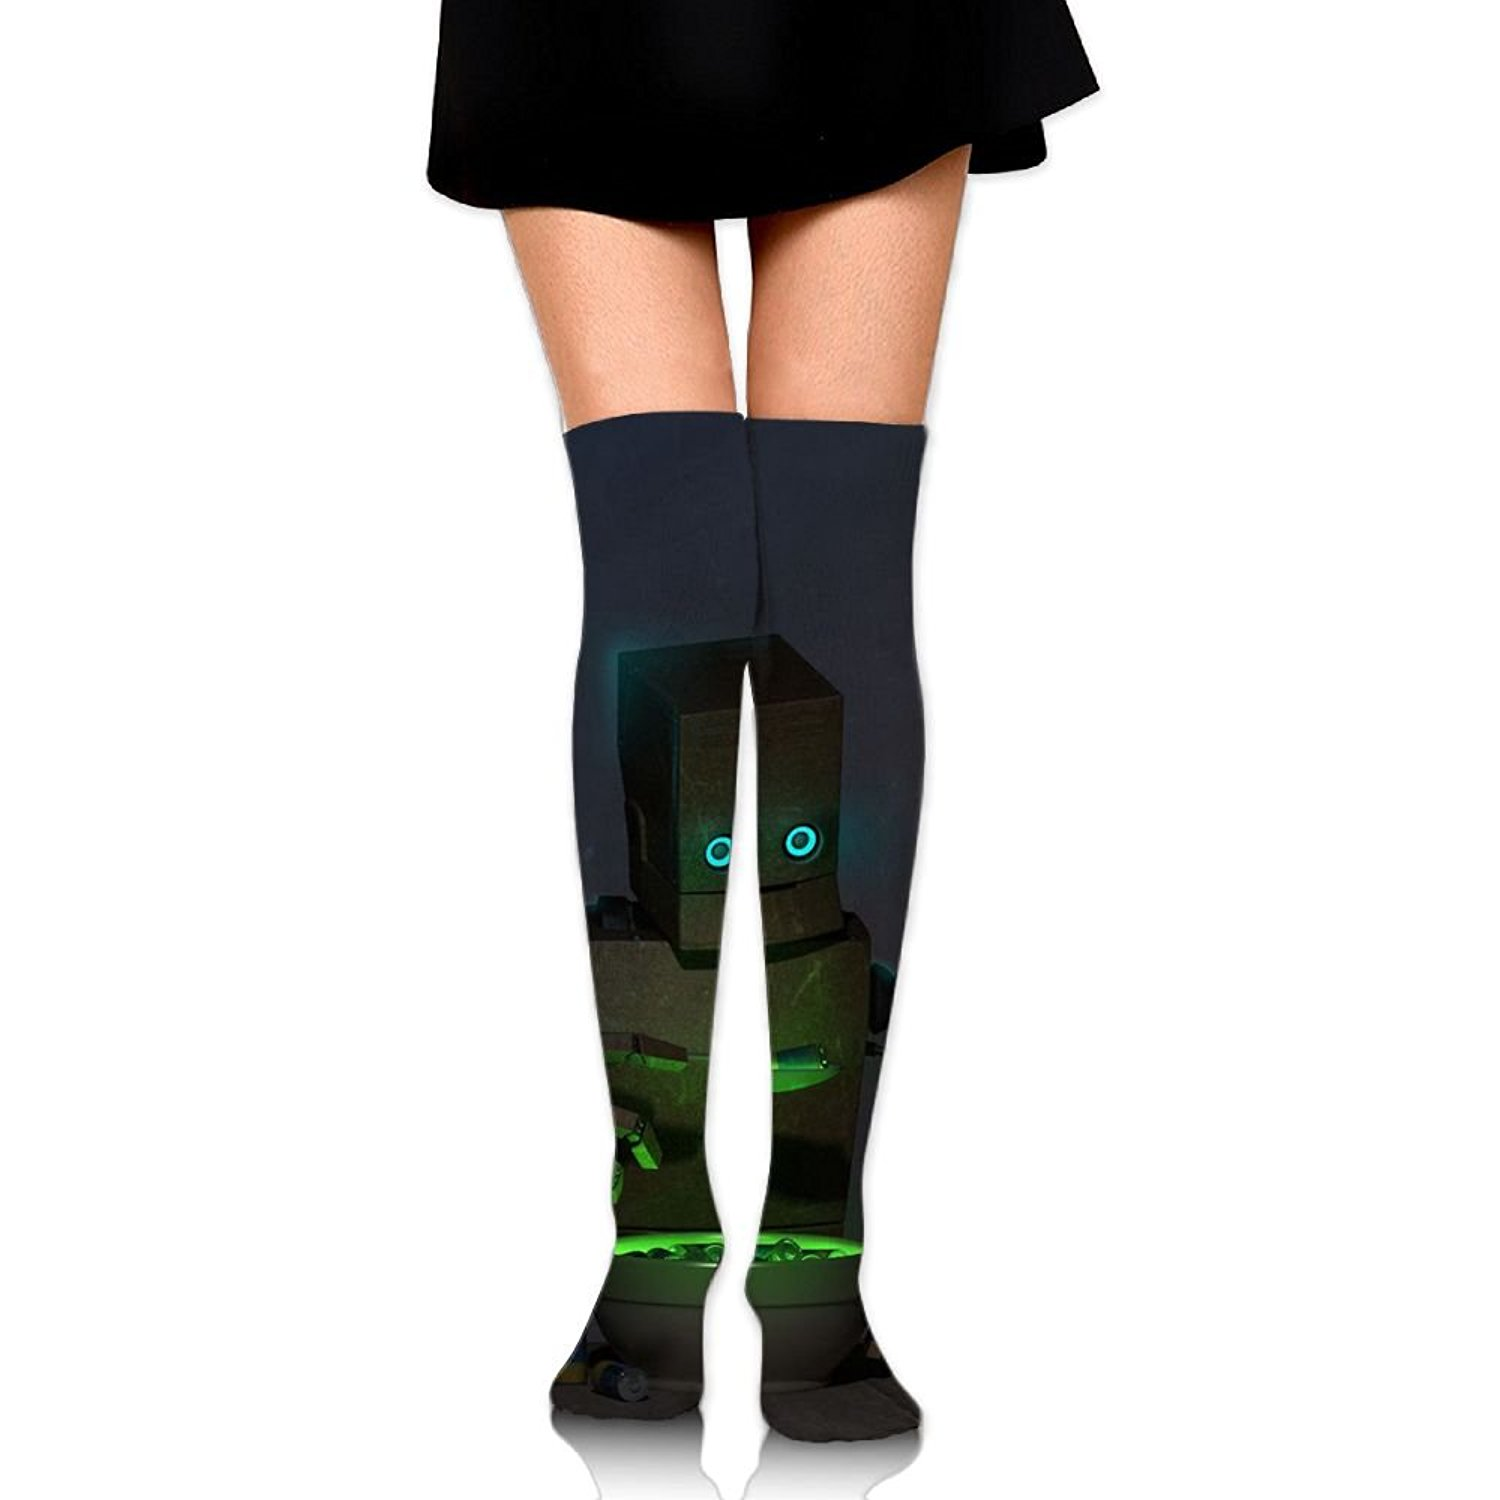 Zaqxsw Robot Women Vintage Thigh High Socks Thermal Socks For Womens